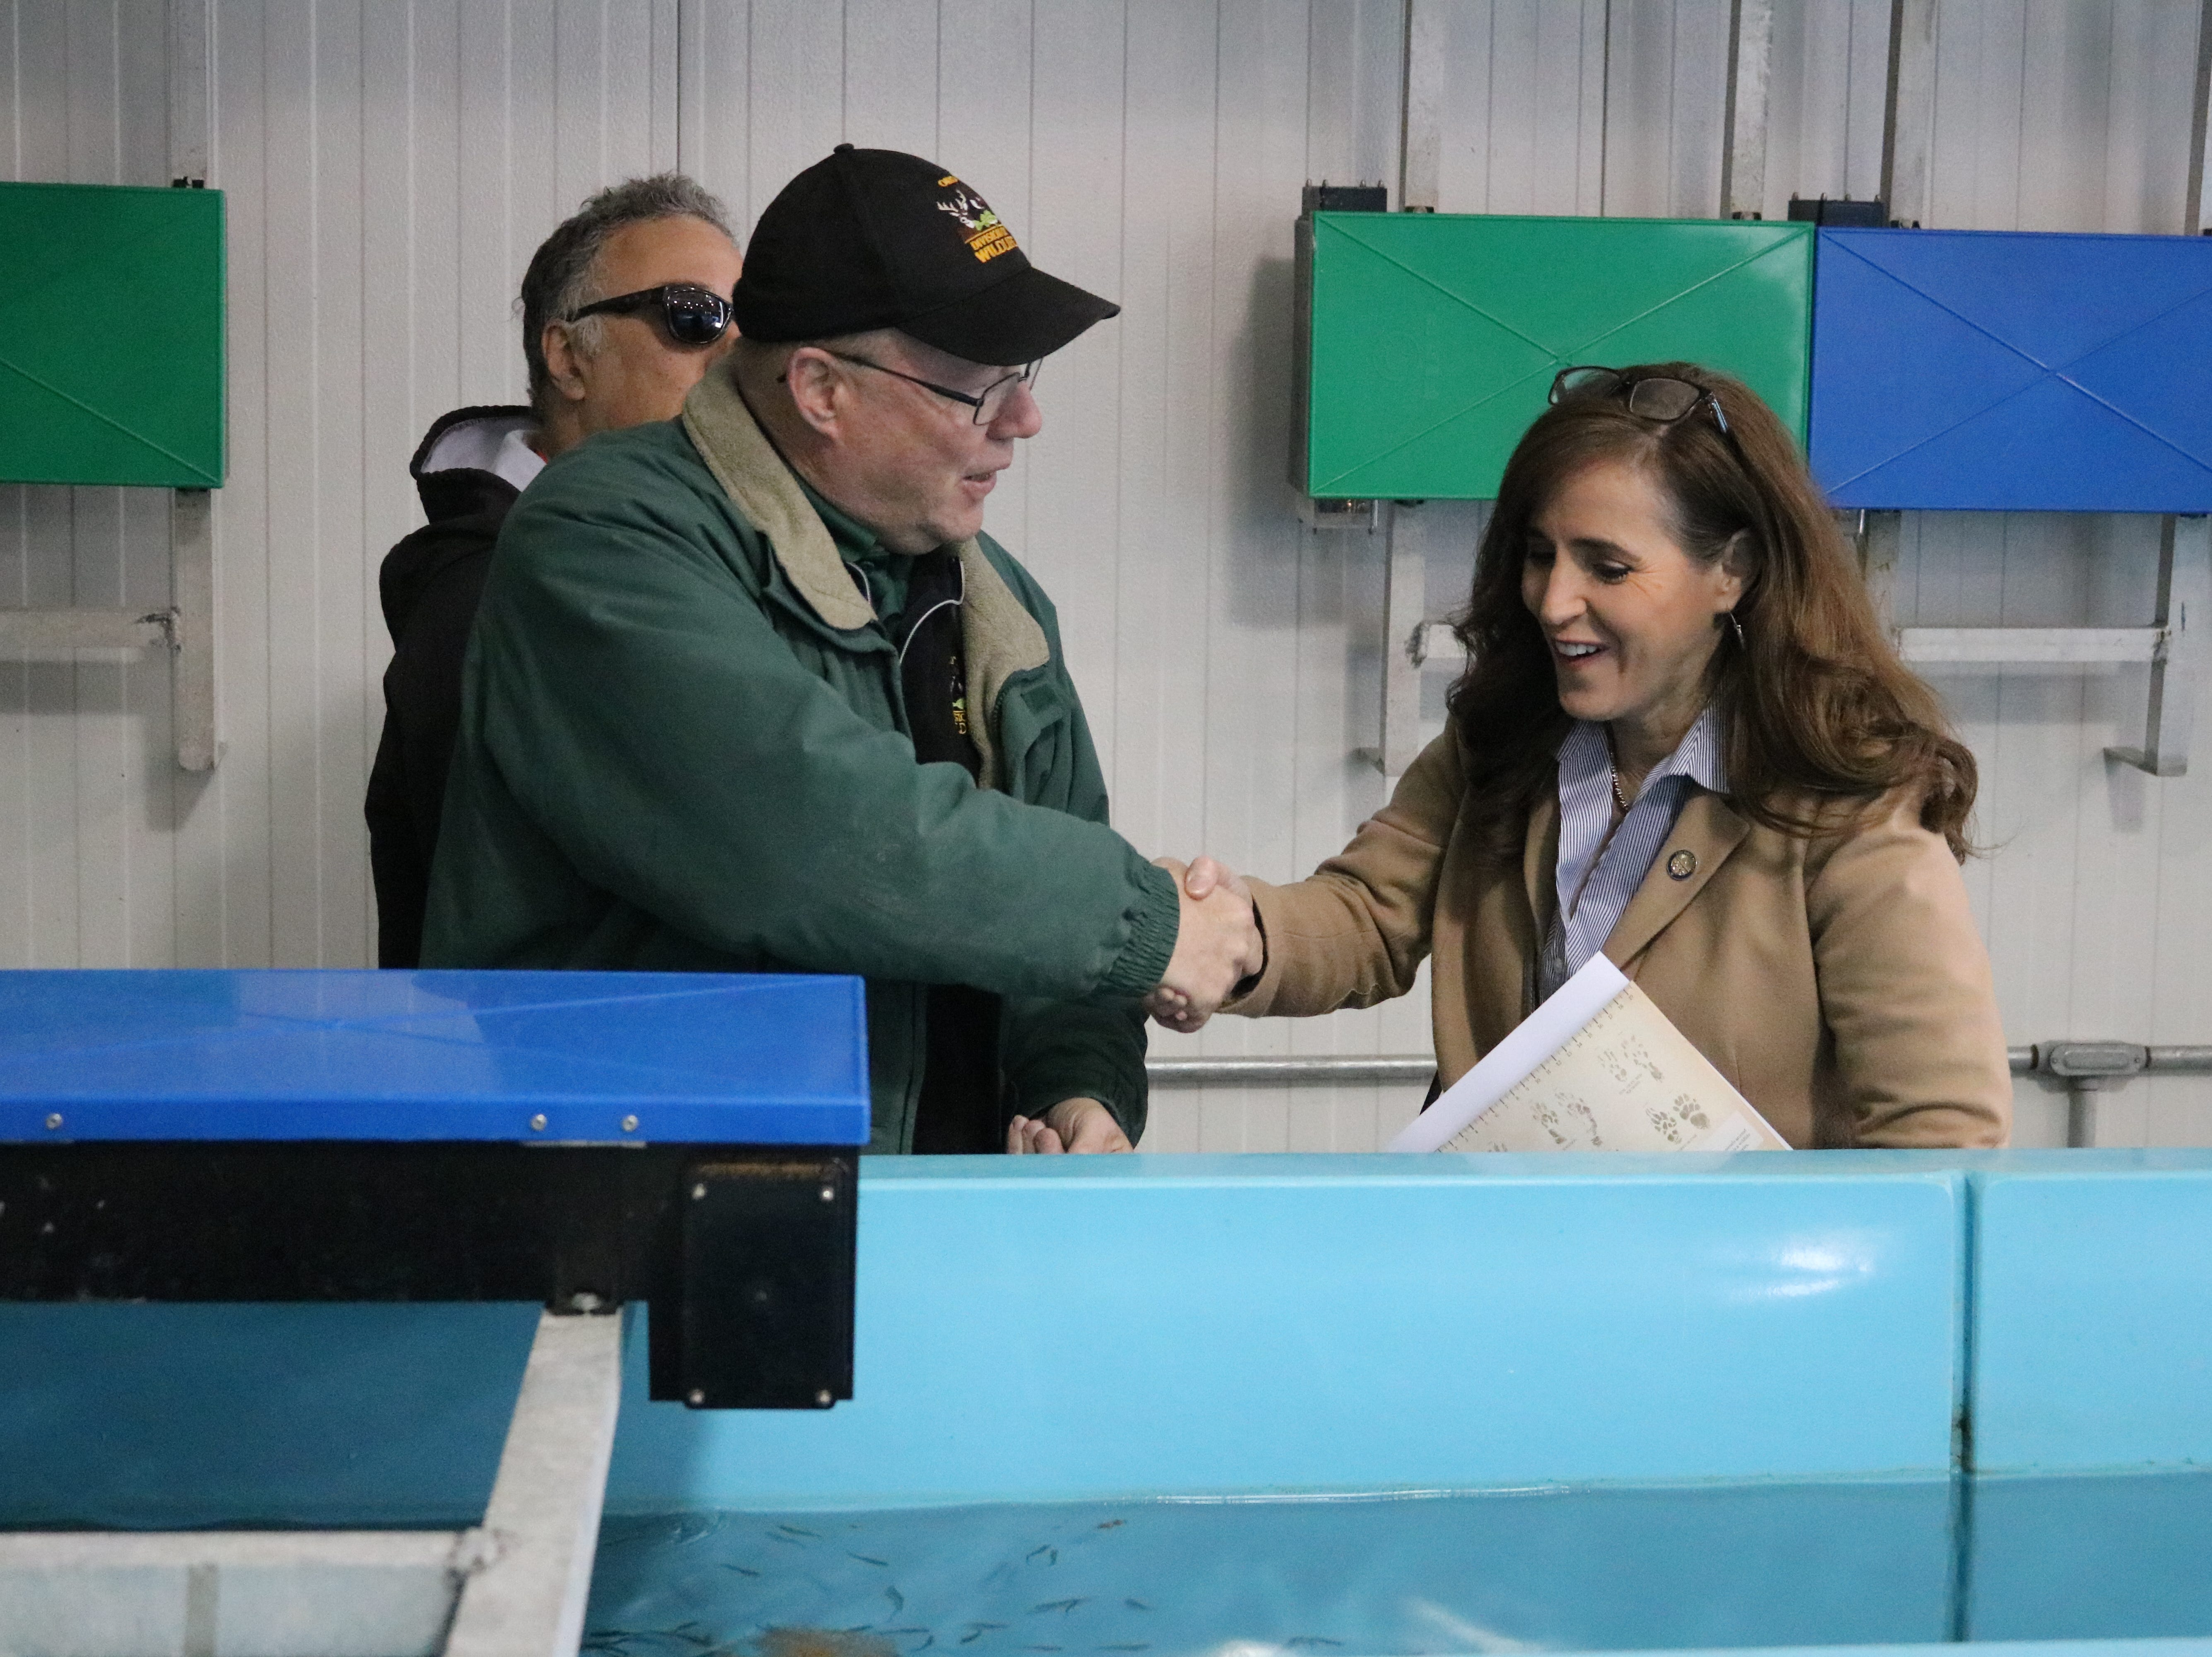 Kevin Kayle, administrator of the state fish hatchery program, speaks with State Sen. Theresa Gavarone during the open house in Castalia on Saturday.